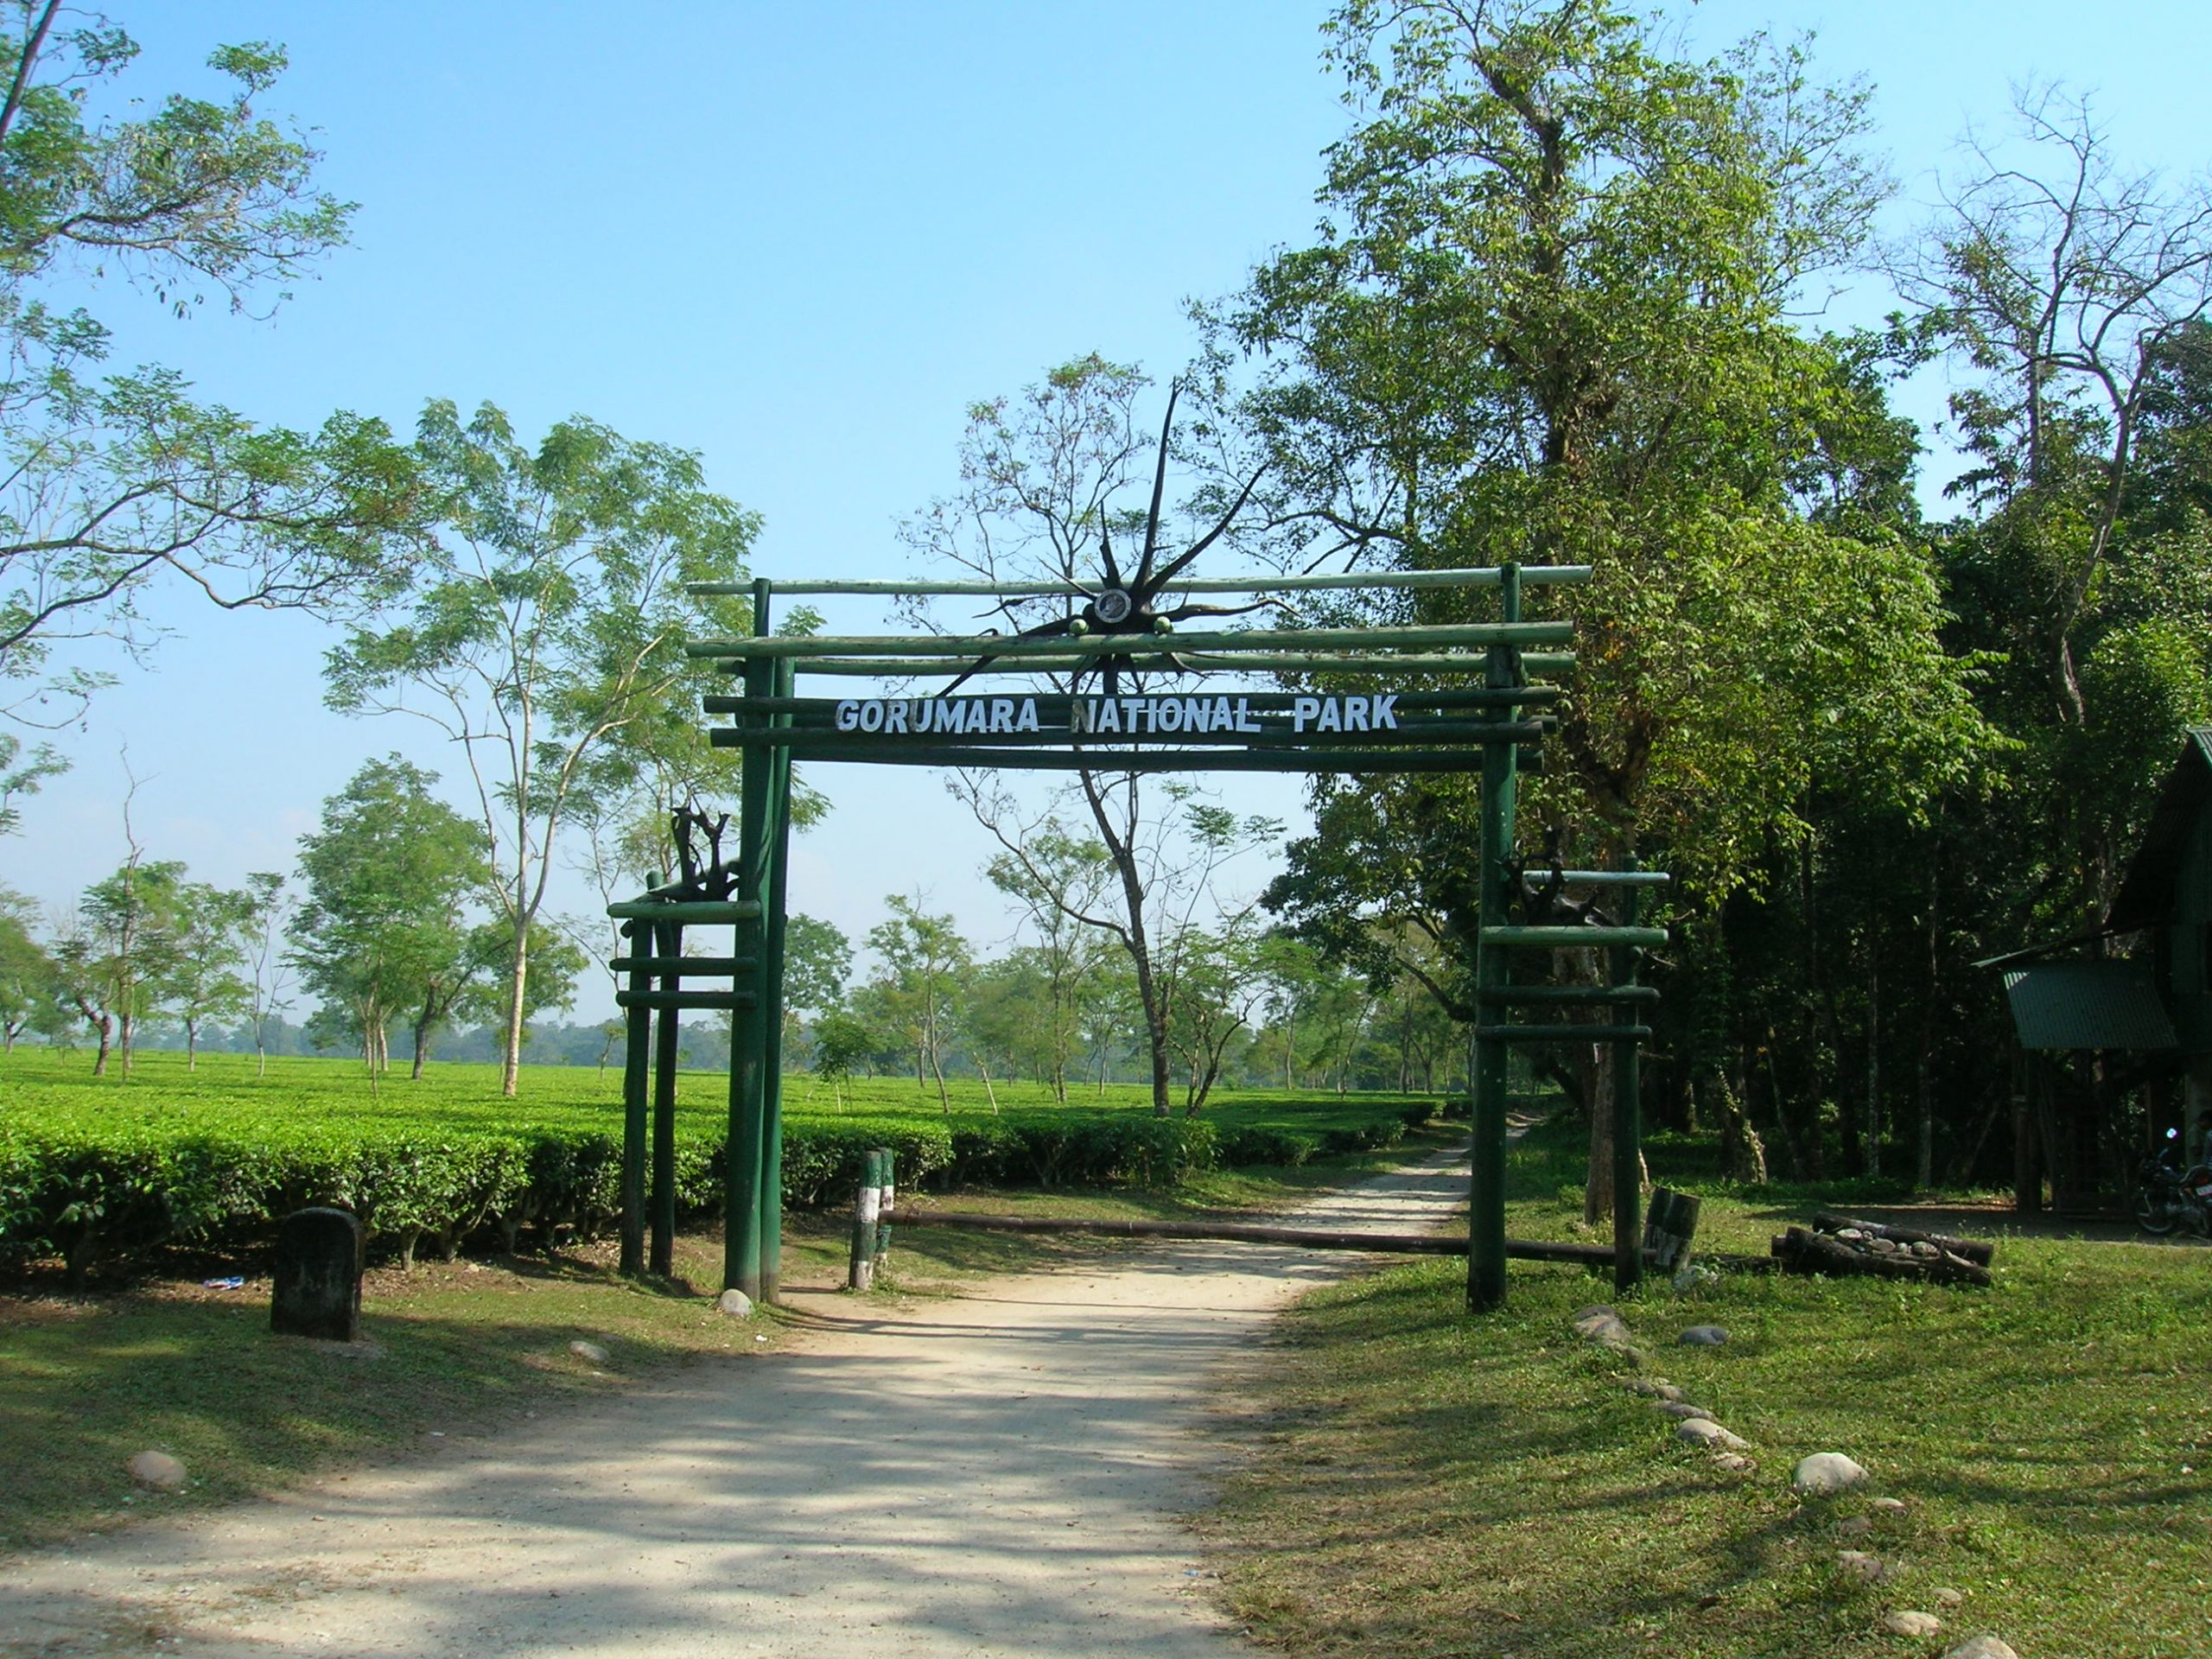 Gorumara National Park - Worthy Places to Visit Every Tourist in West Bengal